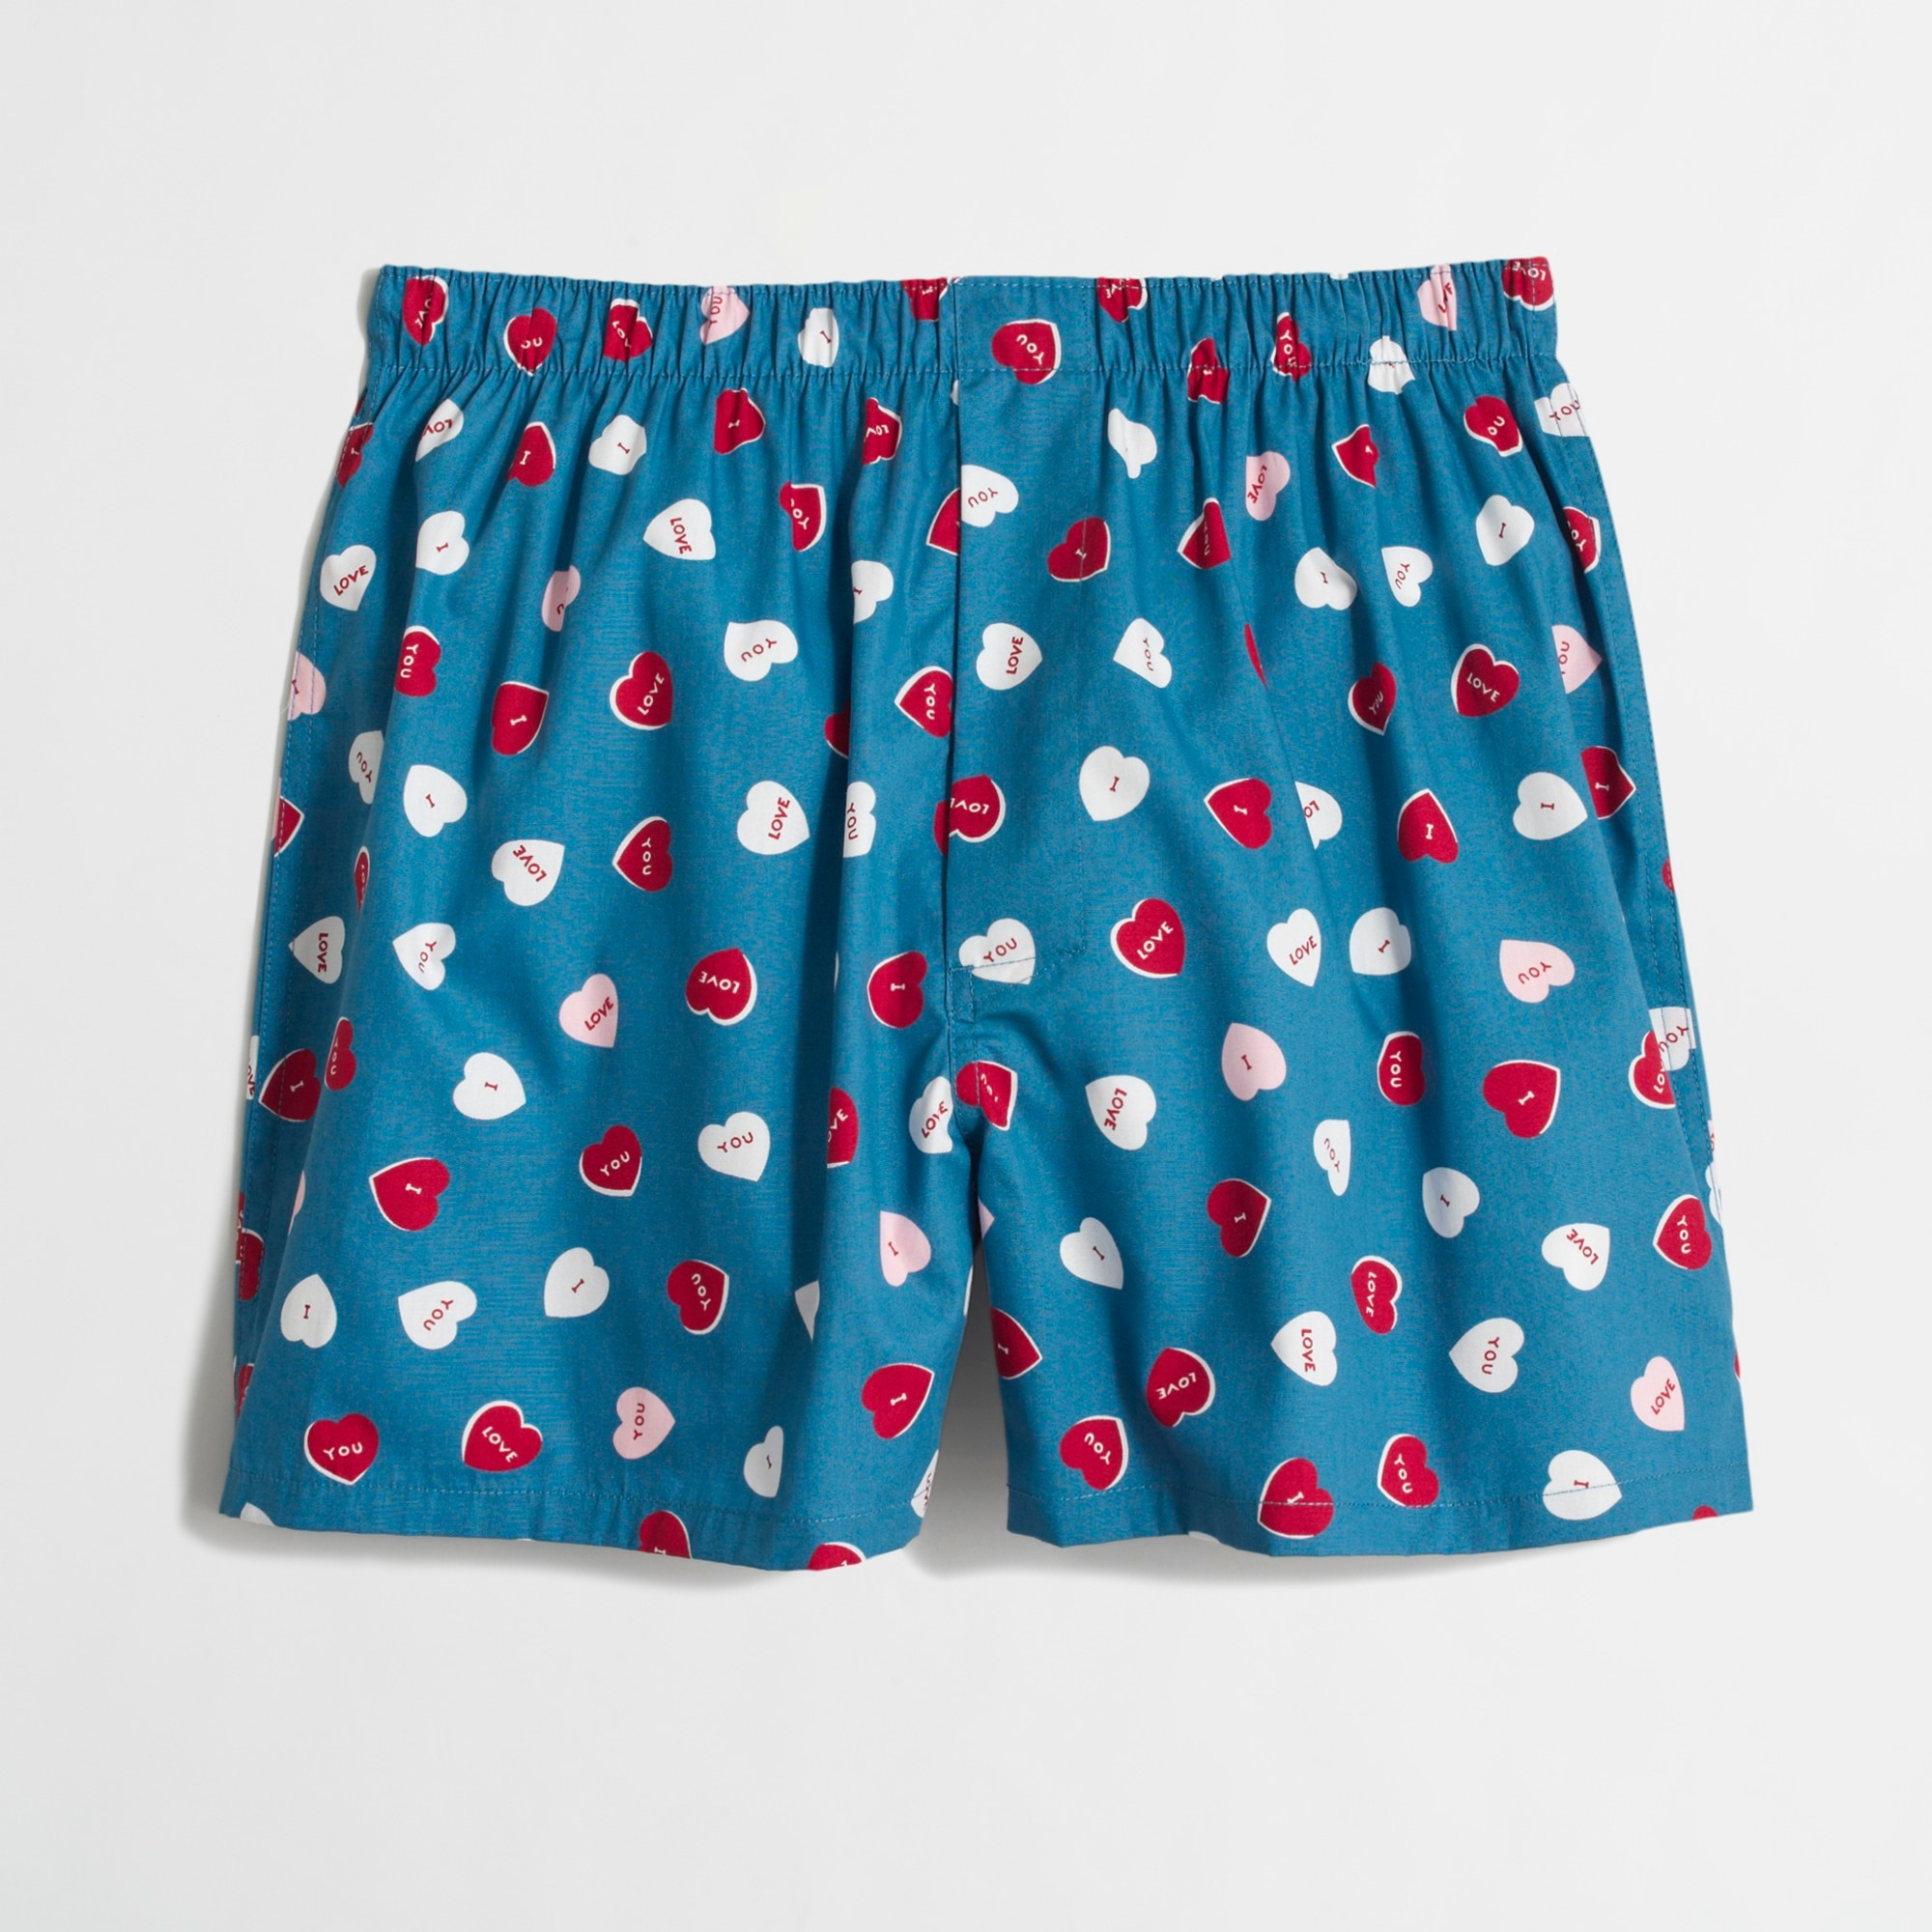 i love you hearts boxers : factorymen boxers